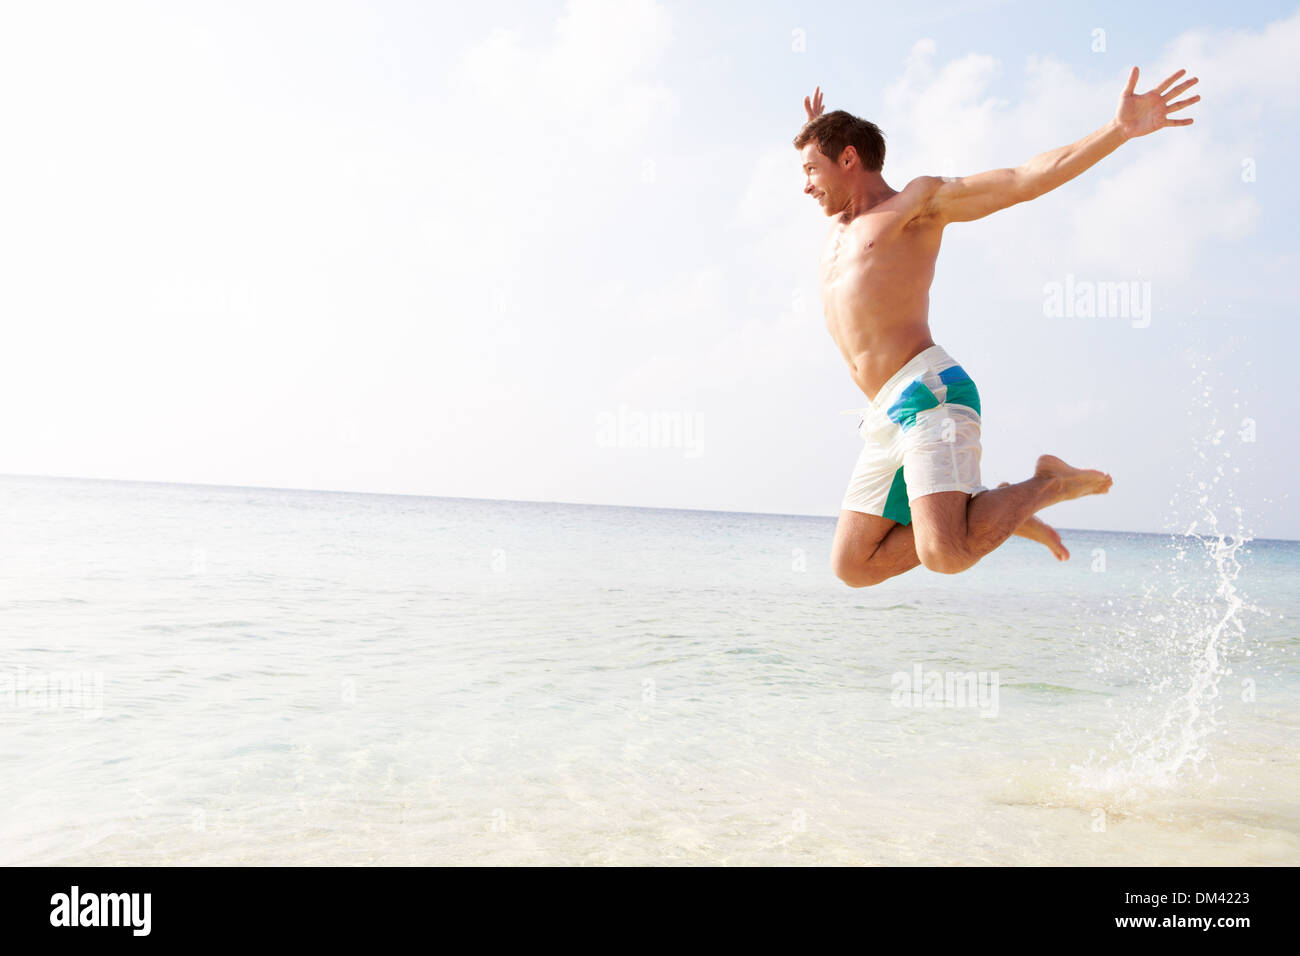 Man Jumping In The Air On Tropical Beach - Stock Image